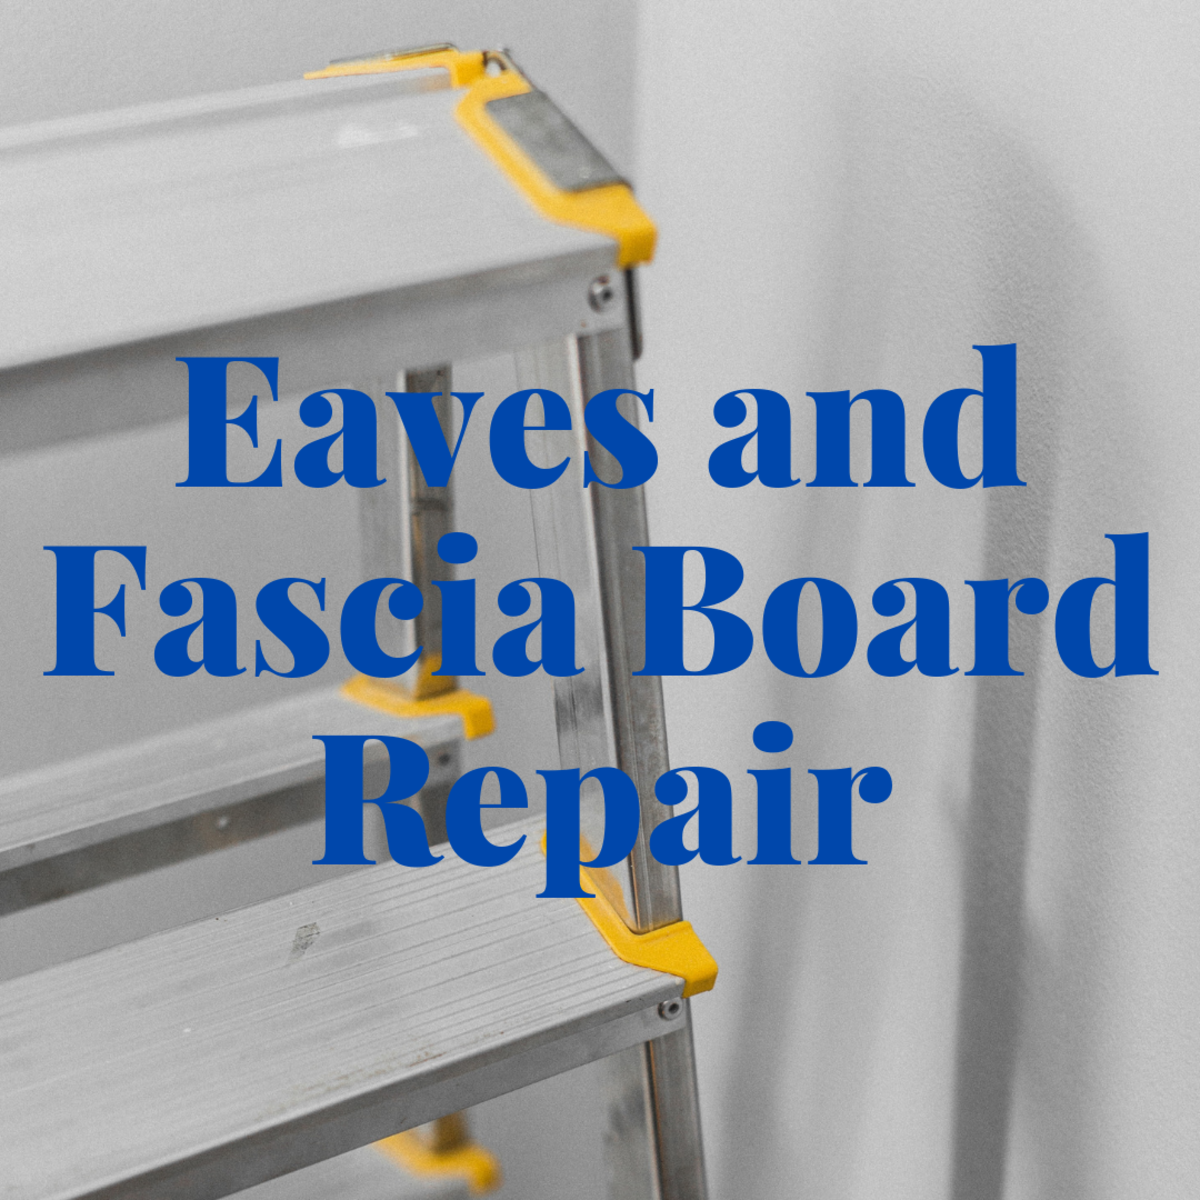 Eaves and Fascia Board Repair: How (Not) to Fix Them | Dengarden